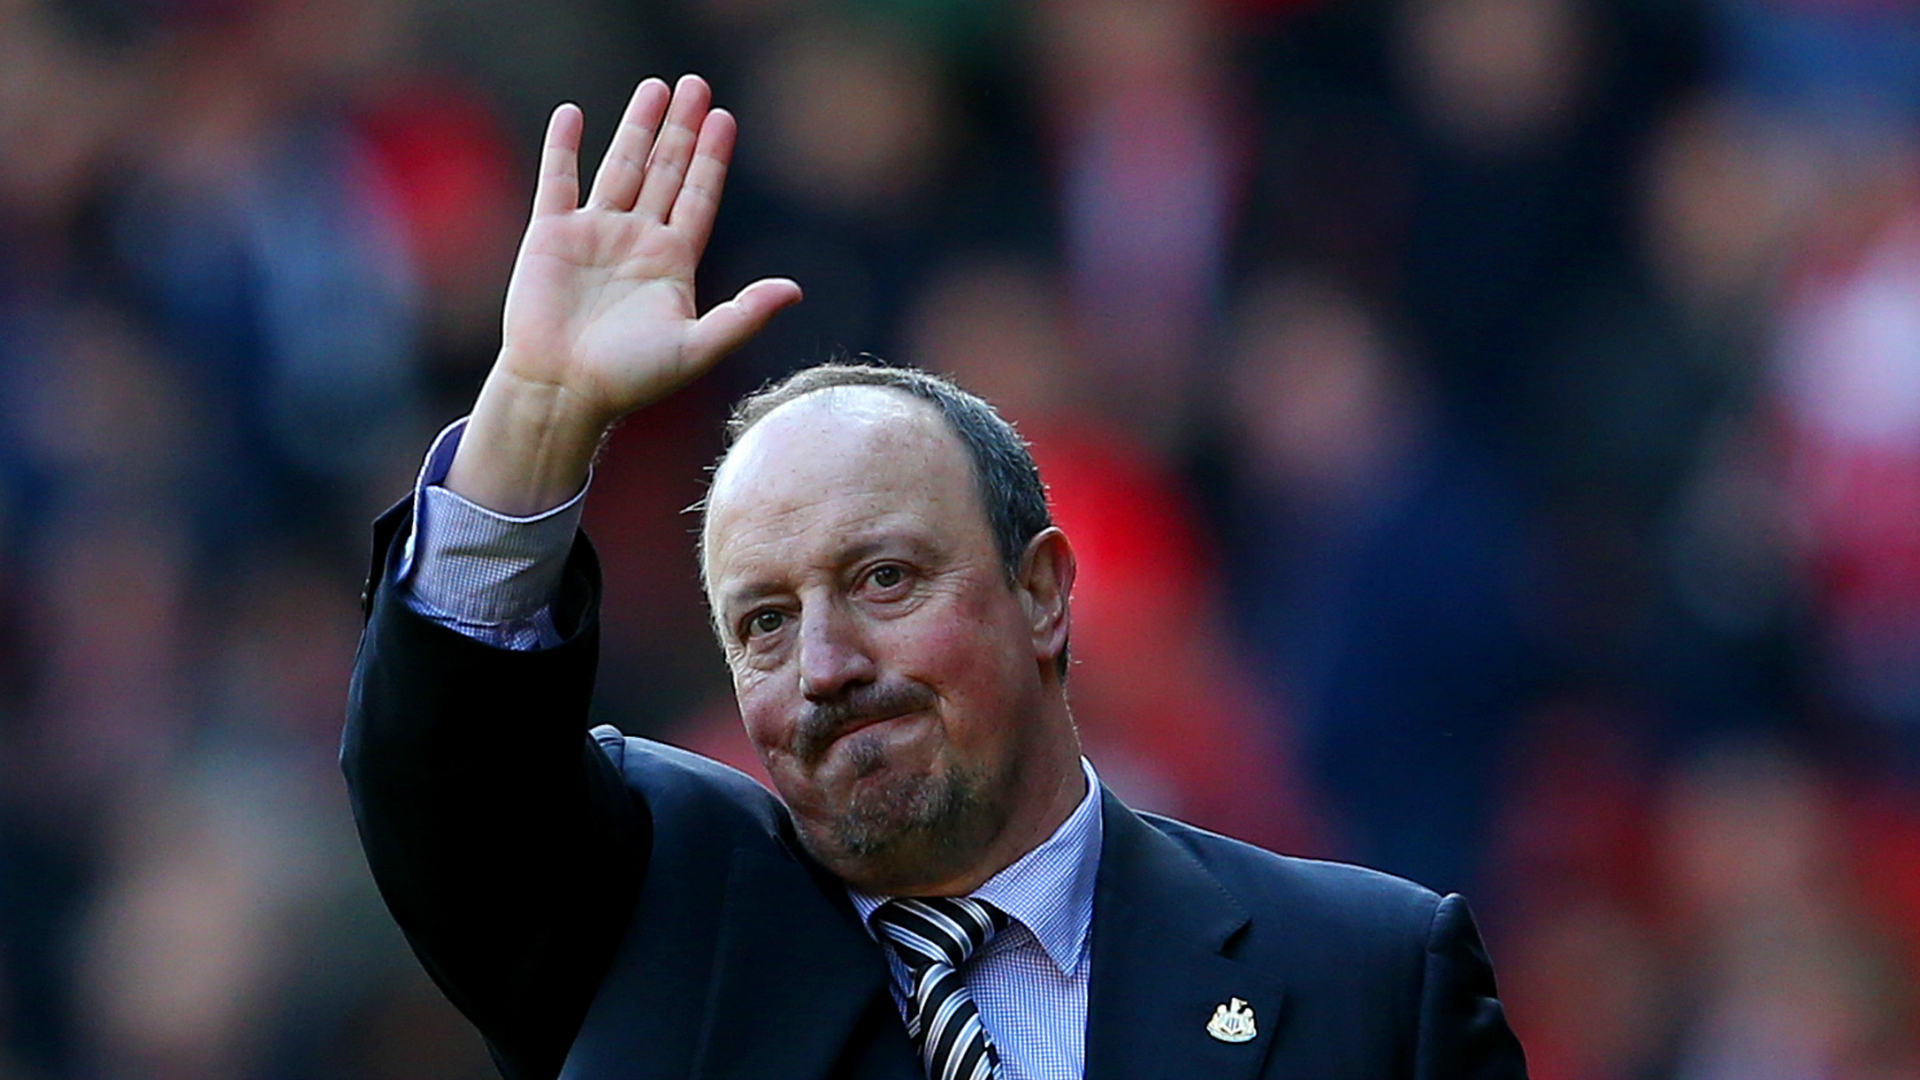 Swansea City vs Newcastle United - betting tips and predictions